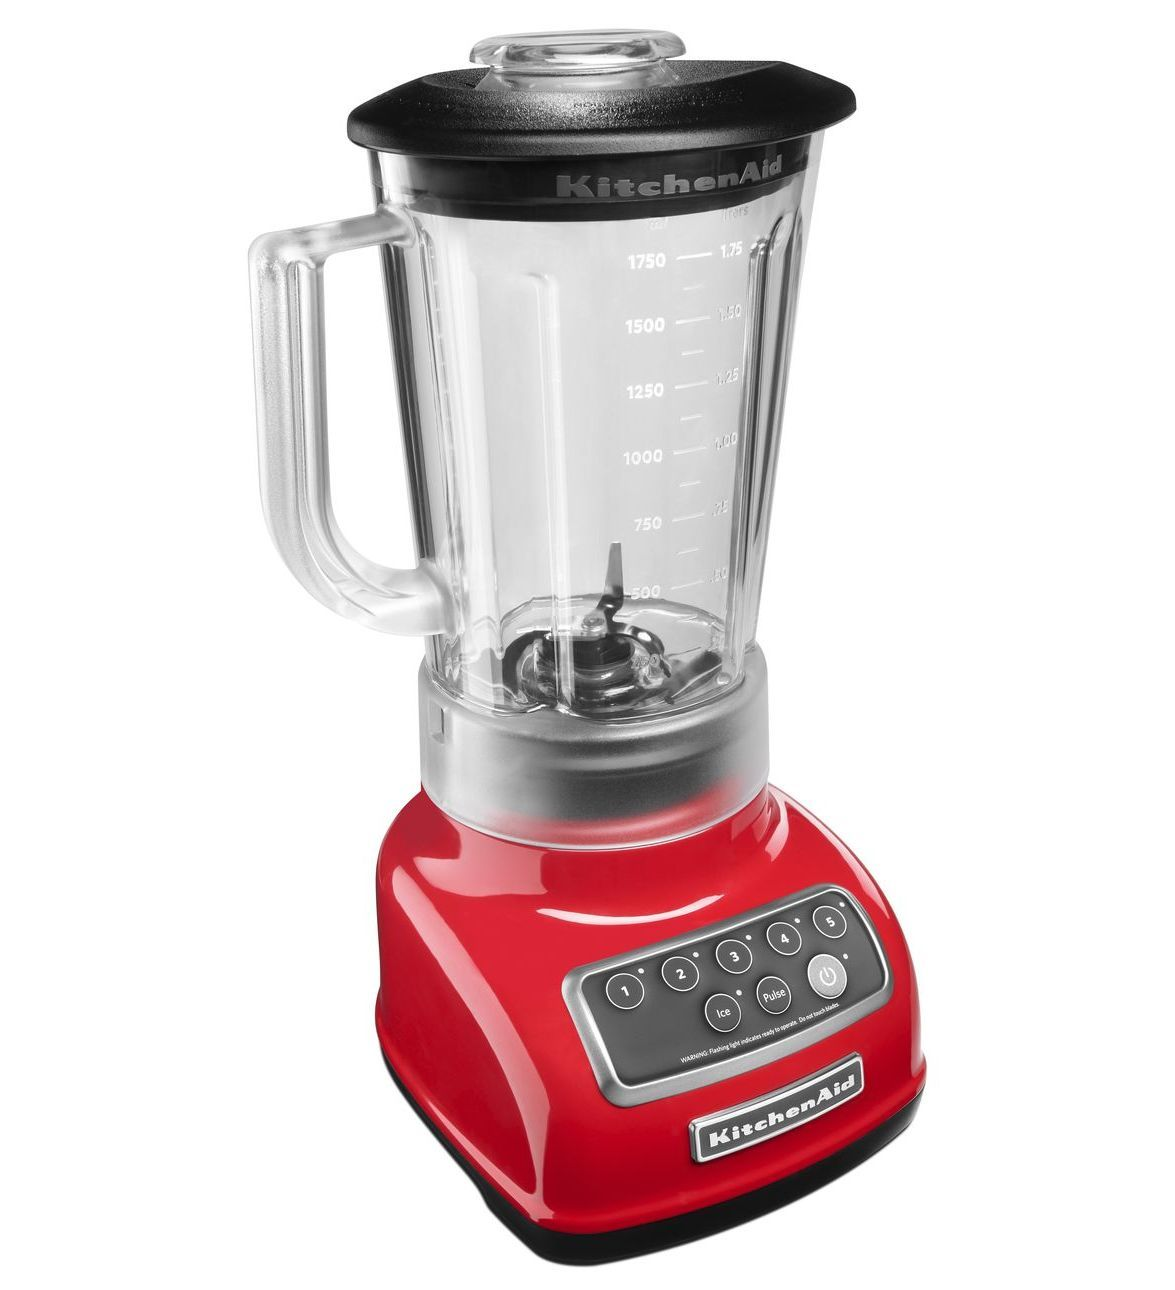 Kitchenaid Ksm150pser Empire Red 10 Speed 5 Qt Stand Mixer With Direct Drive Transmission Kitchenaid Artisan Kitchenaid Artisan Mixer Kitchenaid Artisan Stand Mixer